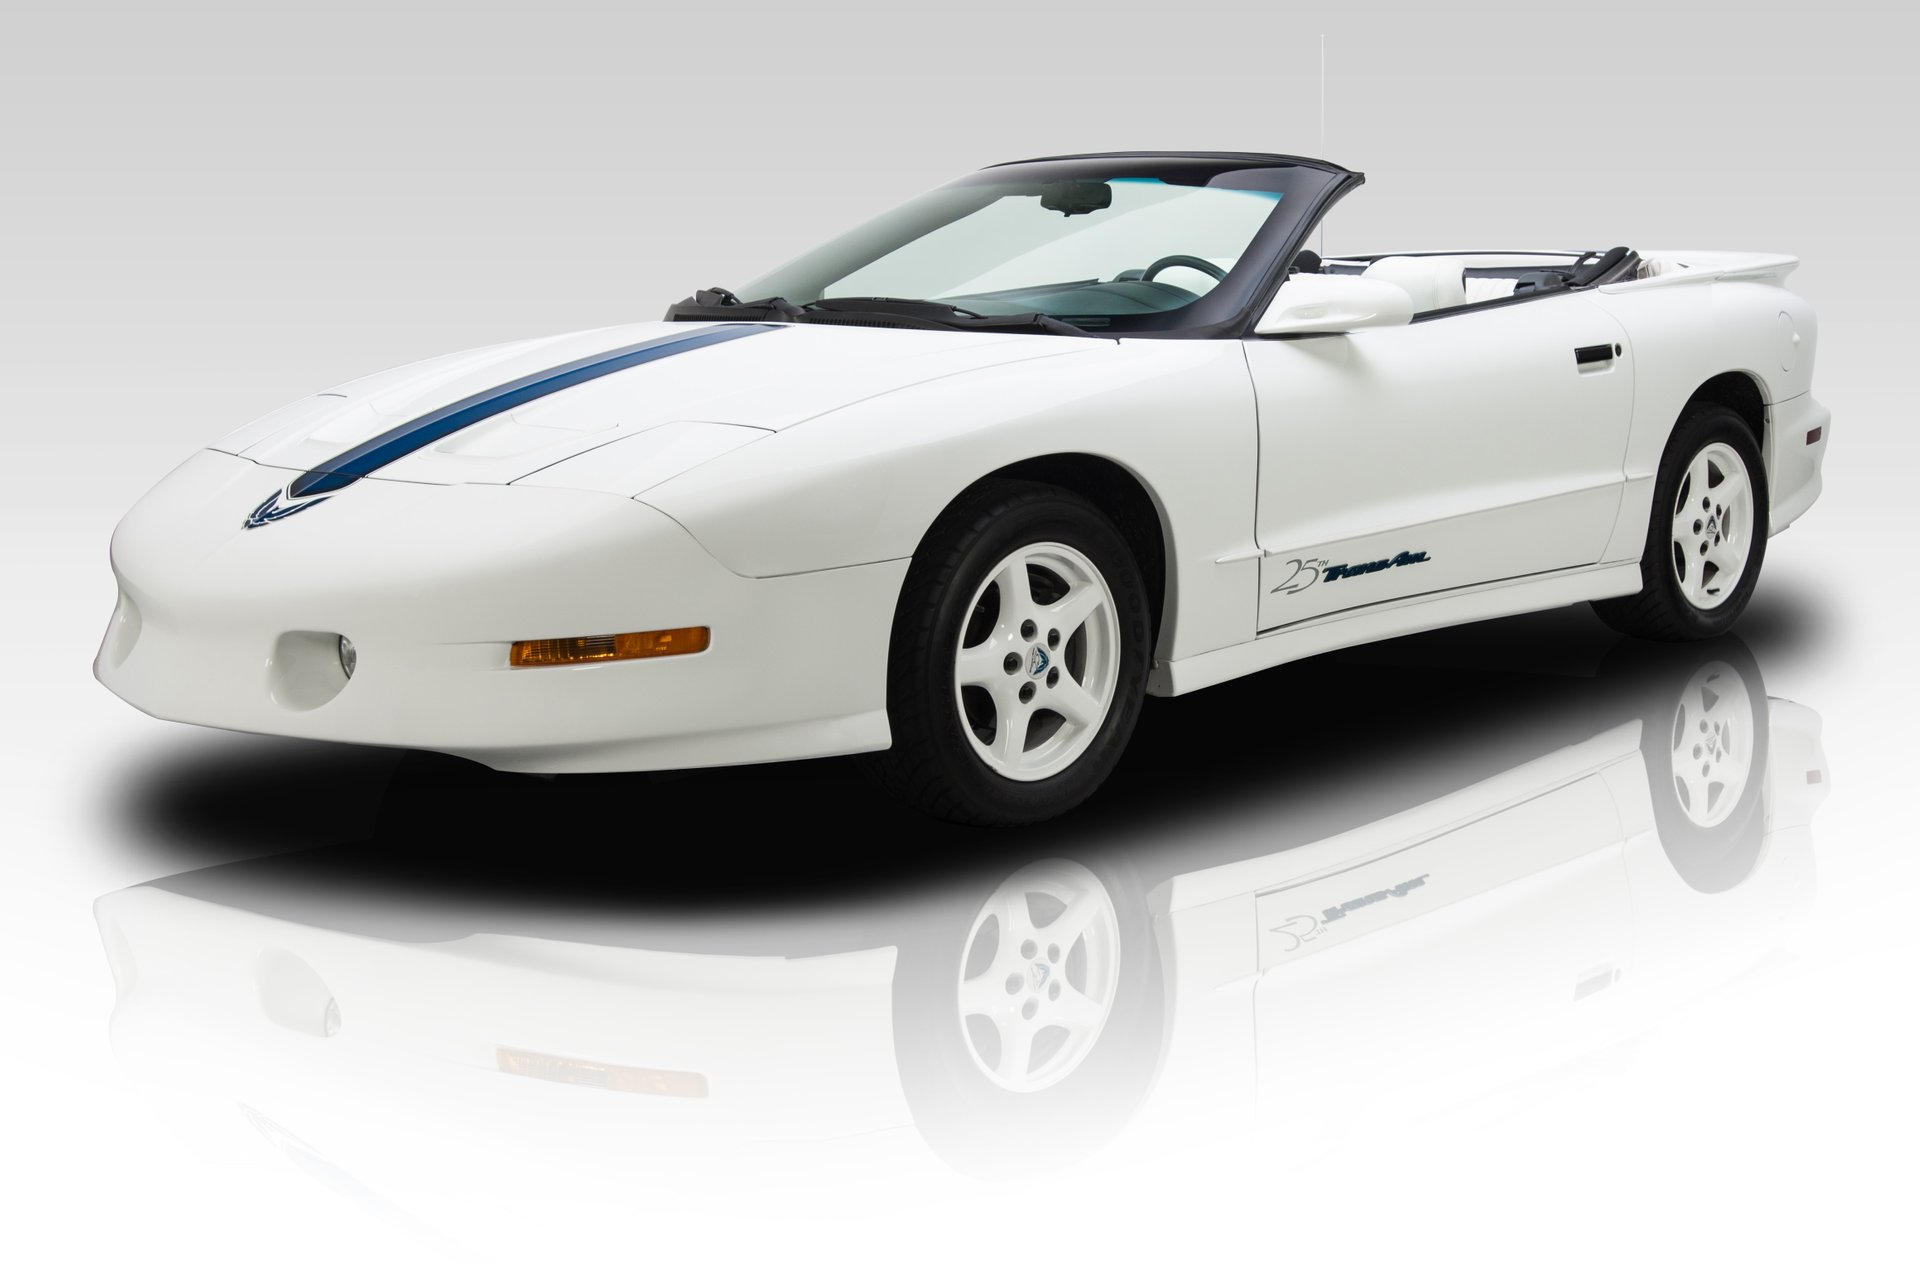 1994 pontiac firebird trans am 25th anniversary edition